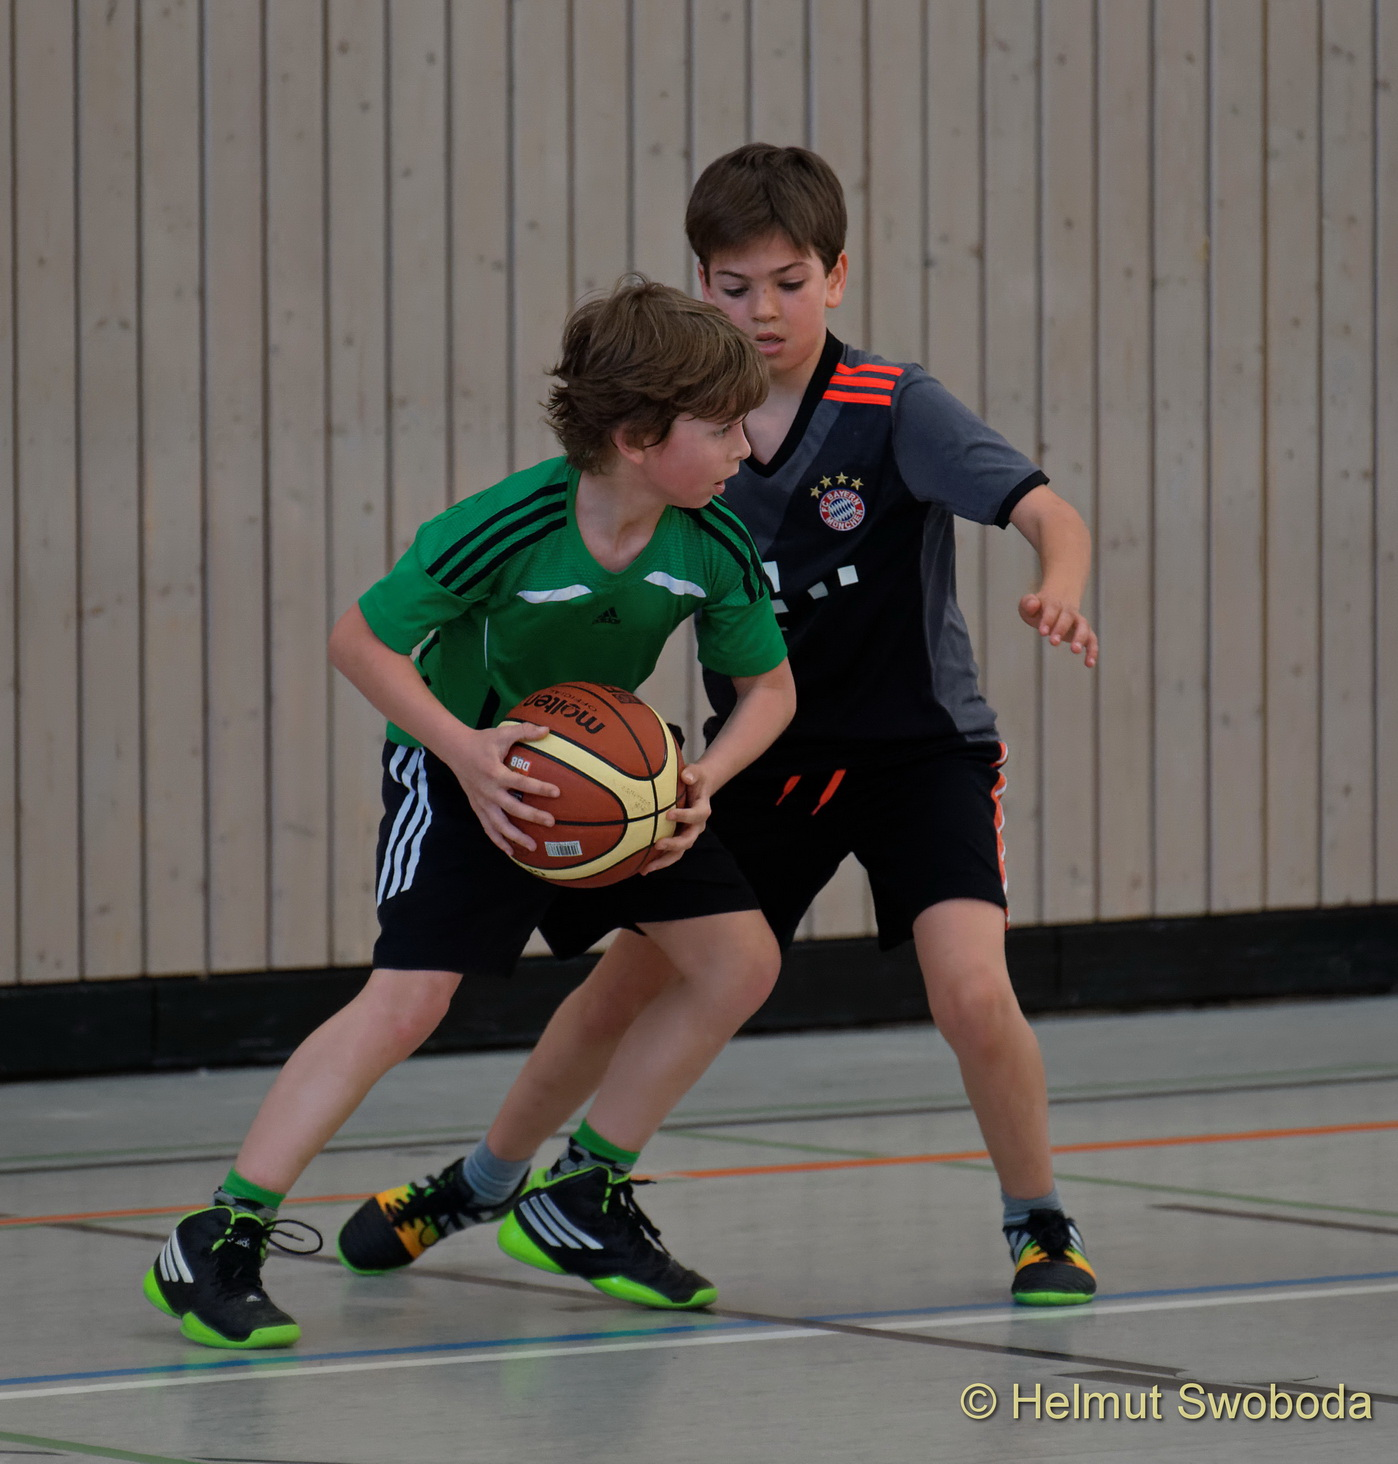 d170402-161353000-100-basketball_weilheim-mixed-turnier_33657311312_o